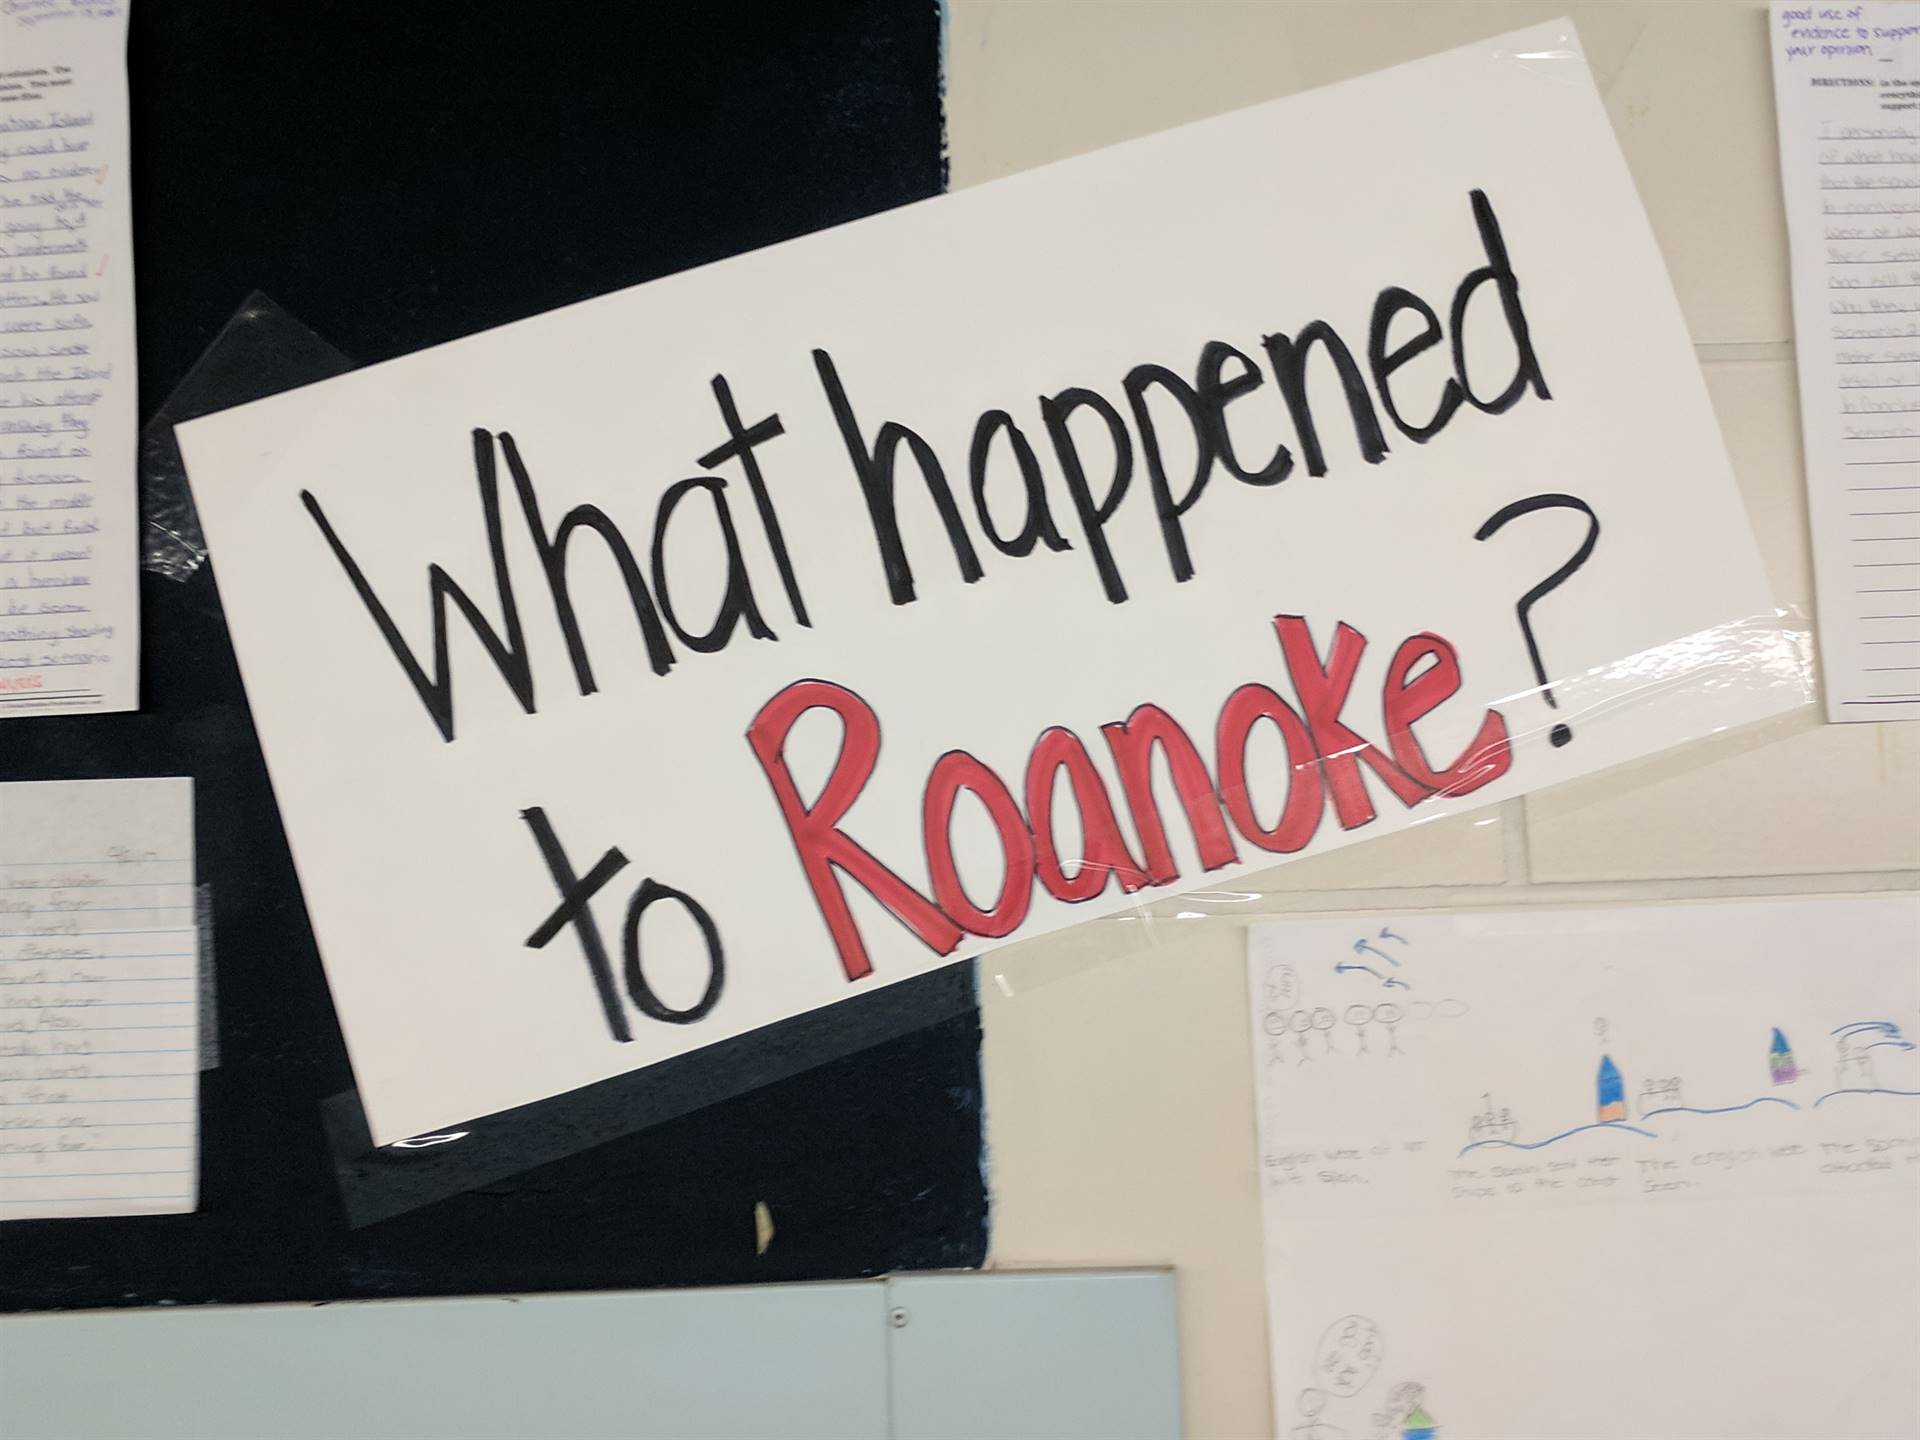 Learning about the Roanoke Colonies